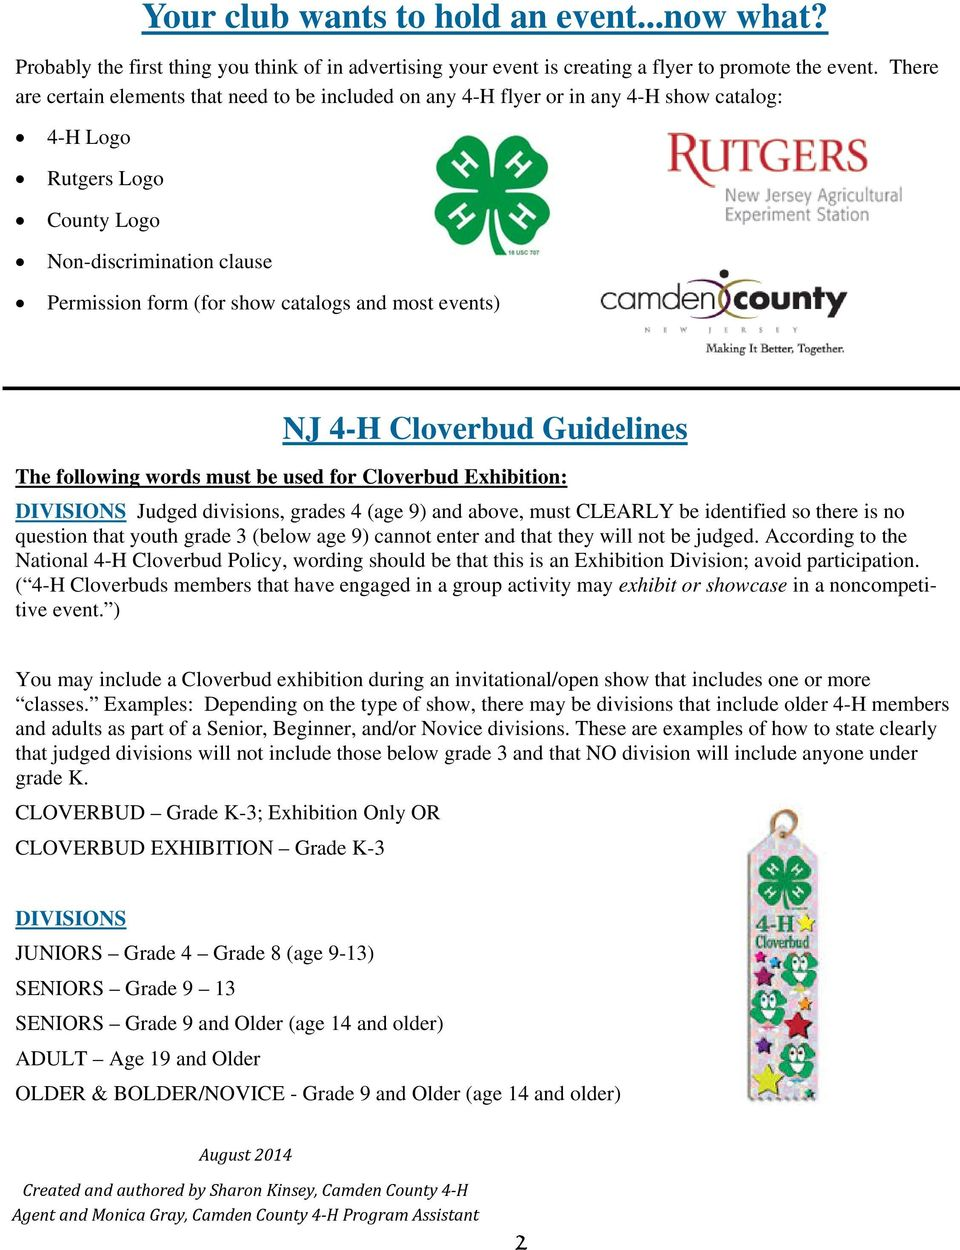 most events) NJ 4-H Cloverbud Guidelines The following words must be used for Cloverbud Exhibition: DIVISIONS Judged divisions, grades 4 (age 9) and above, must CLEARLY be identified so there is no